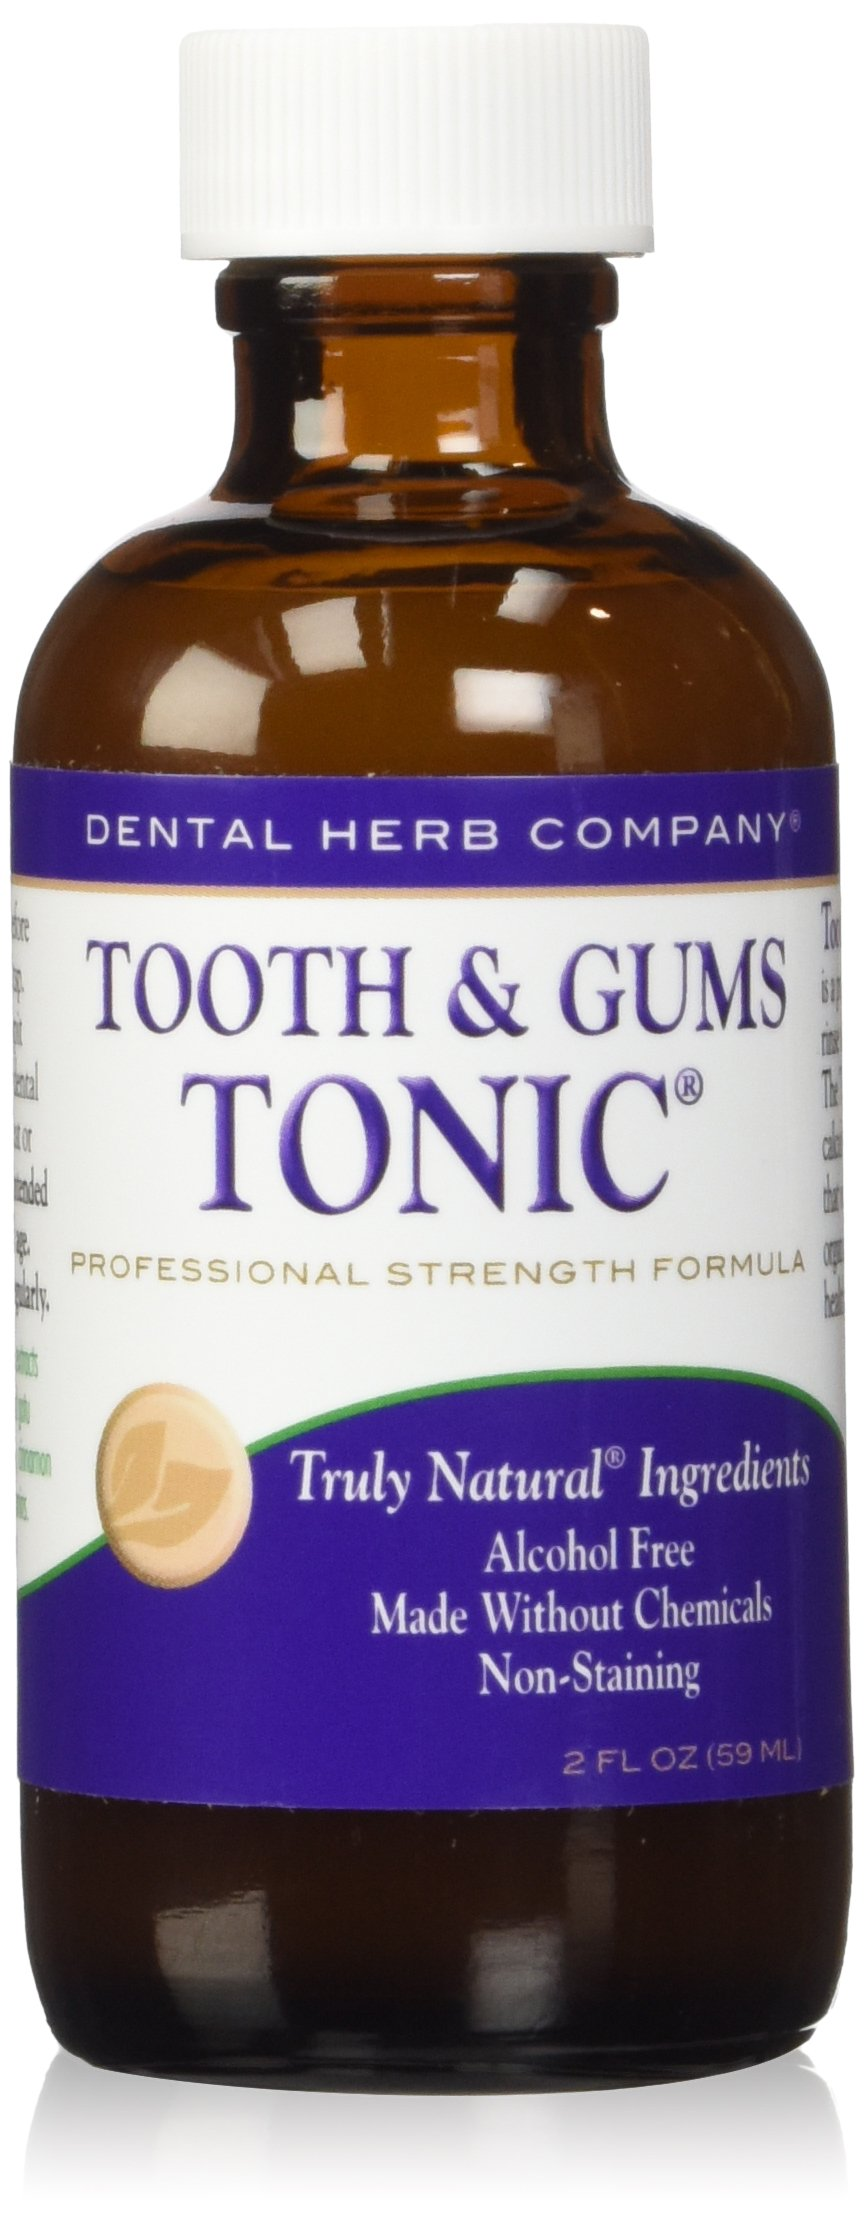 Dental Herb Company DHC-TGTTS Tooth and Gums Tonic -professional strength formula,(alcohol free) 2 oz.